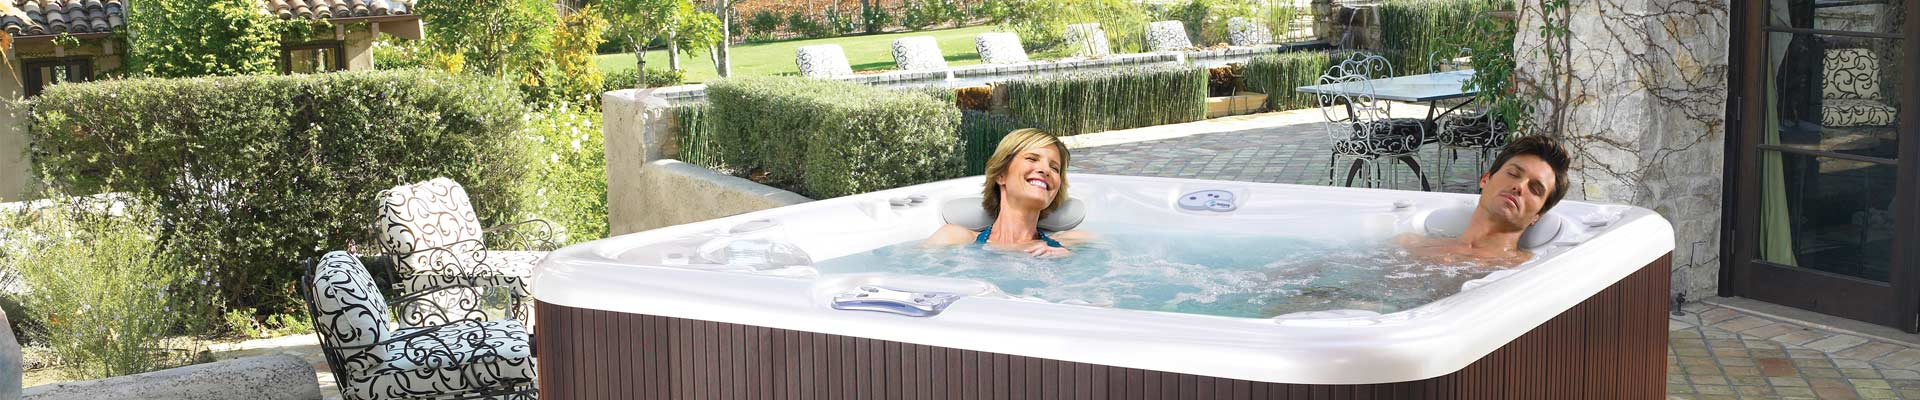 Large and Small Hot Tubs Dealer in Chesterfield, St. Peters and St. Louis Shares Tips for National Optimism Month